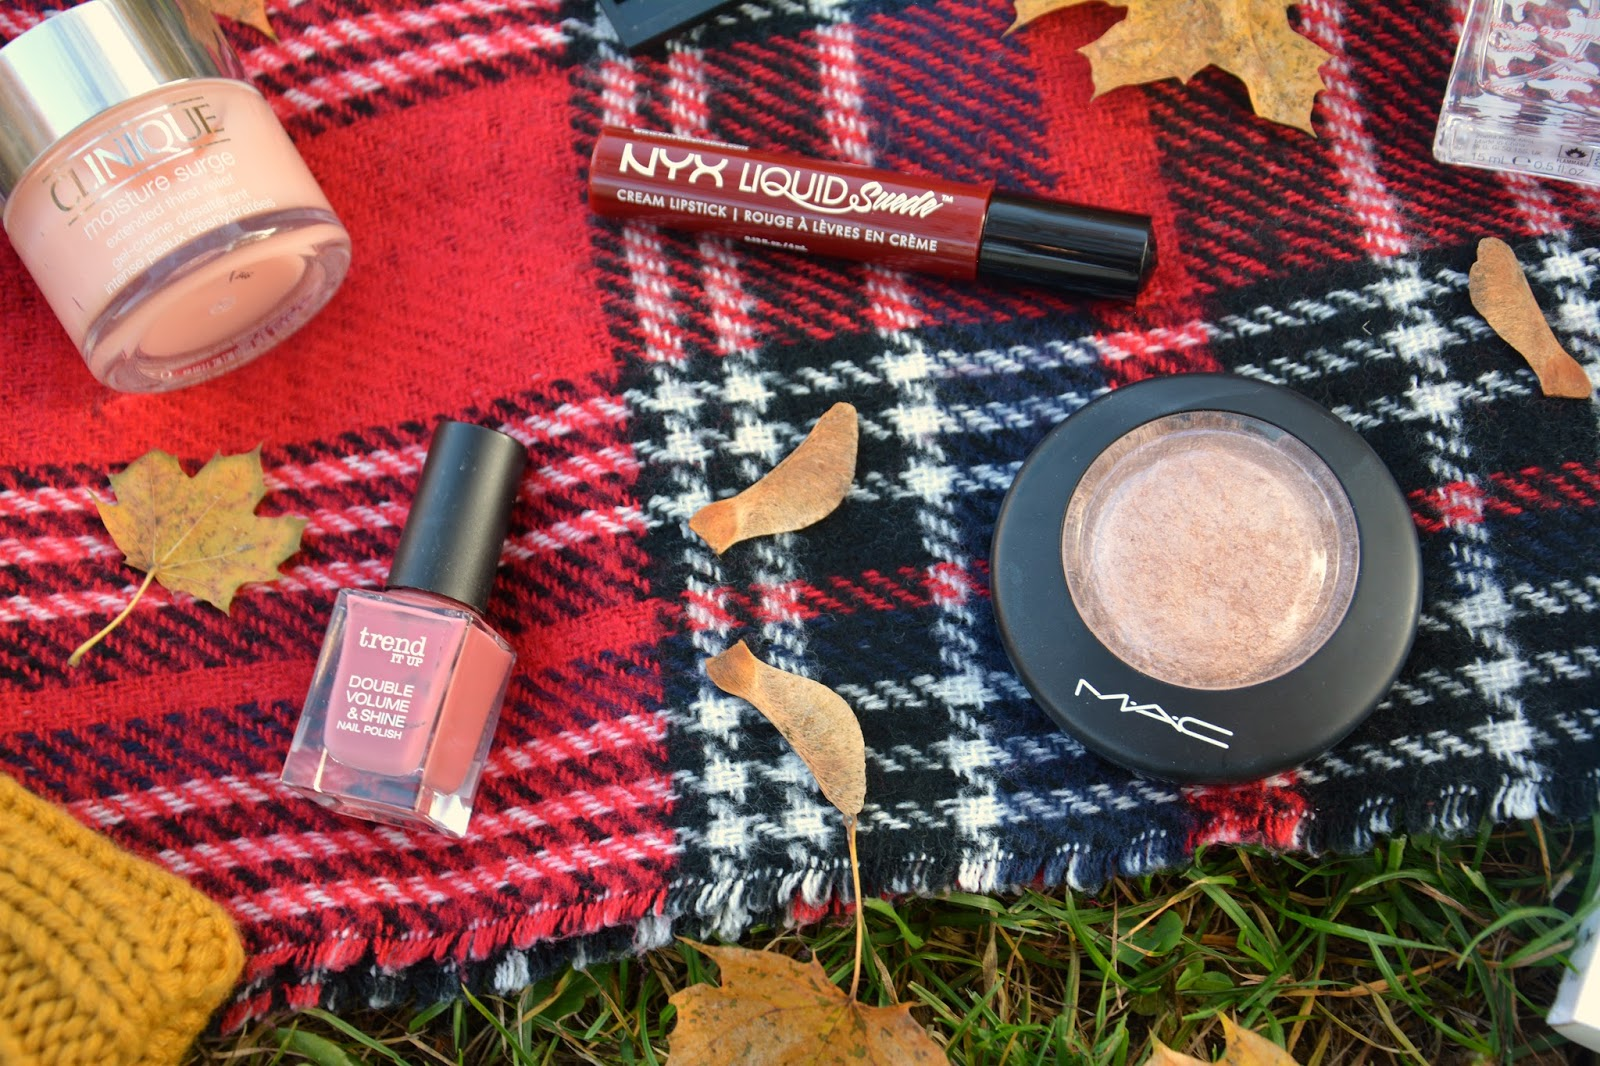 Clinique Moisture Surge, Trend It Up Nailpolish, NYX Liquid Suede Cherry Skies, Mac Soft & Gentle, Primark Blanket Scarf